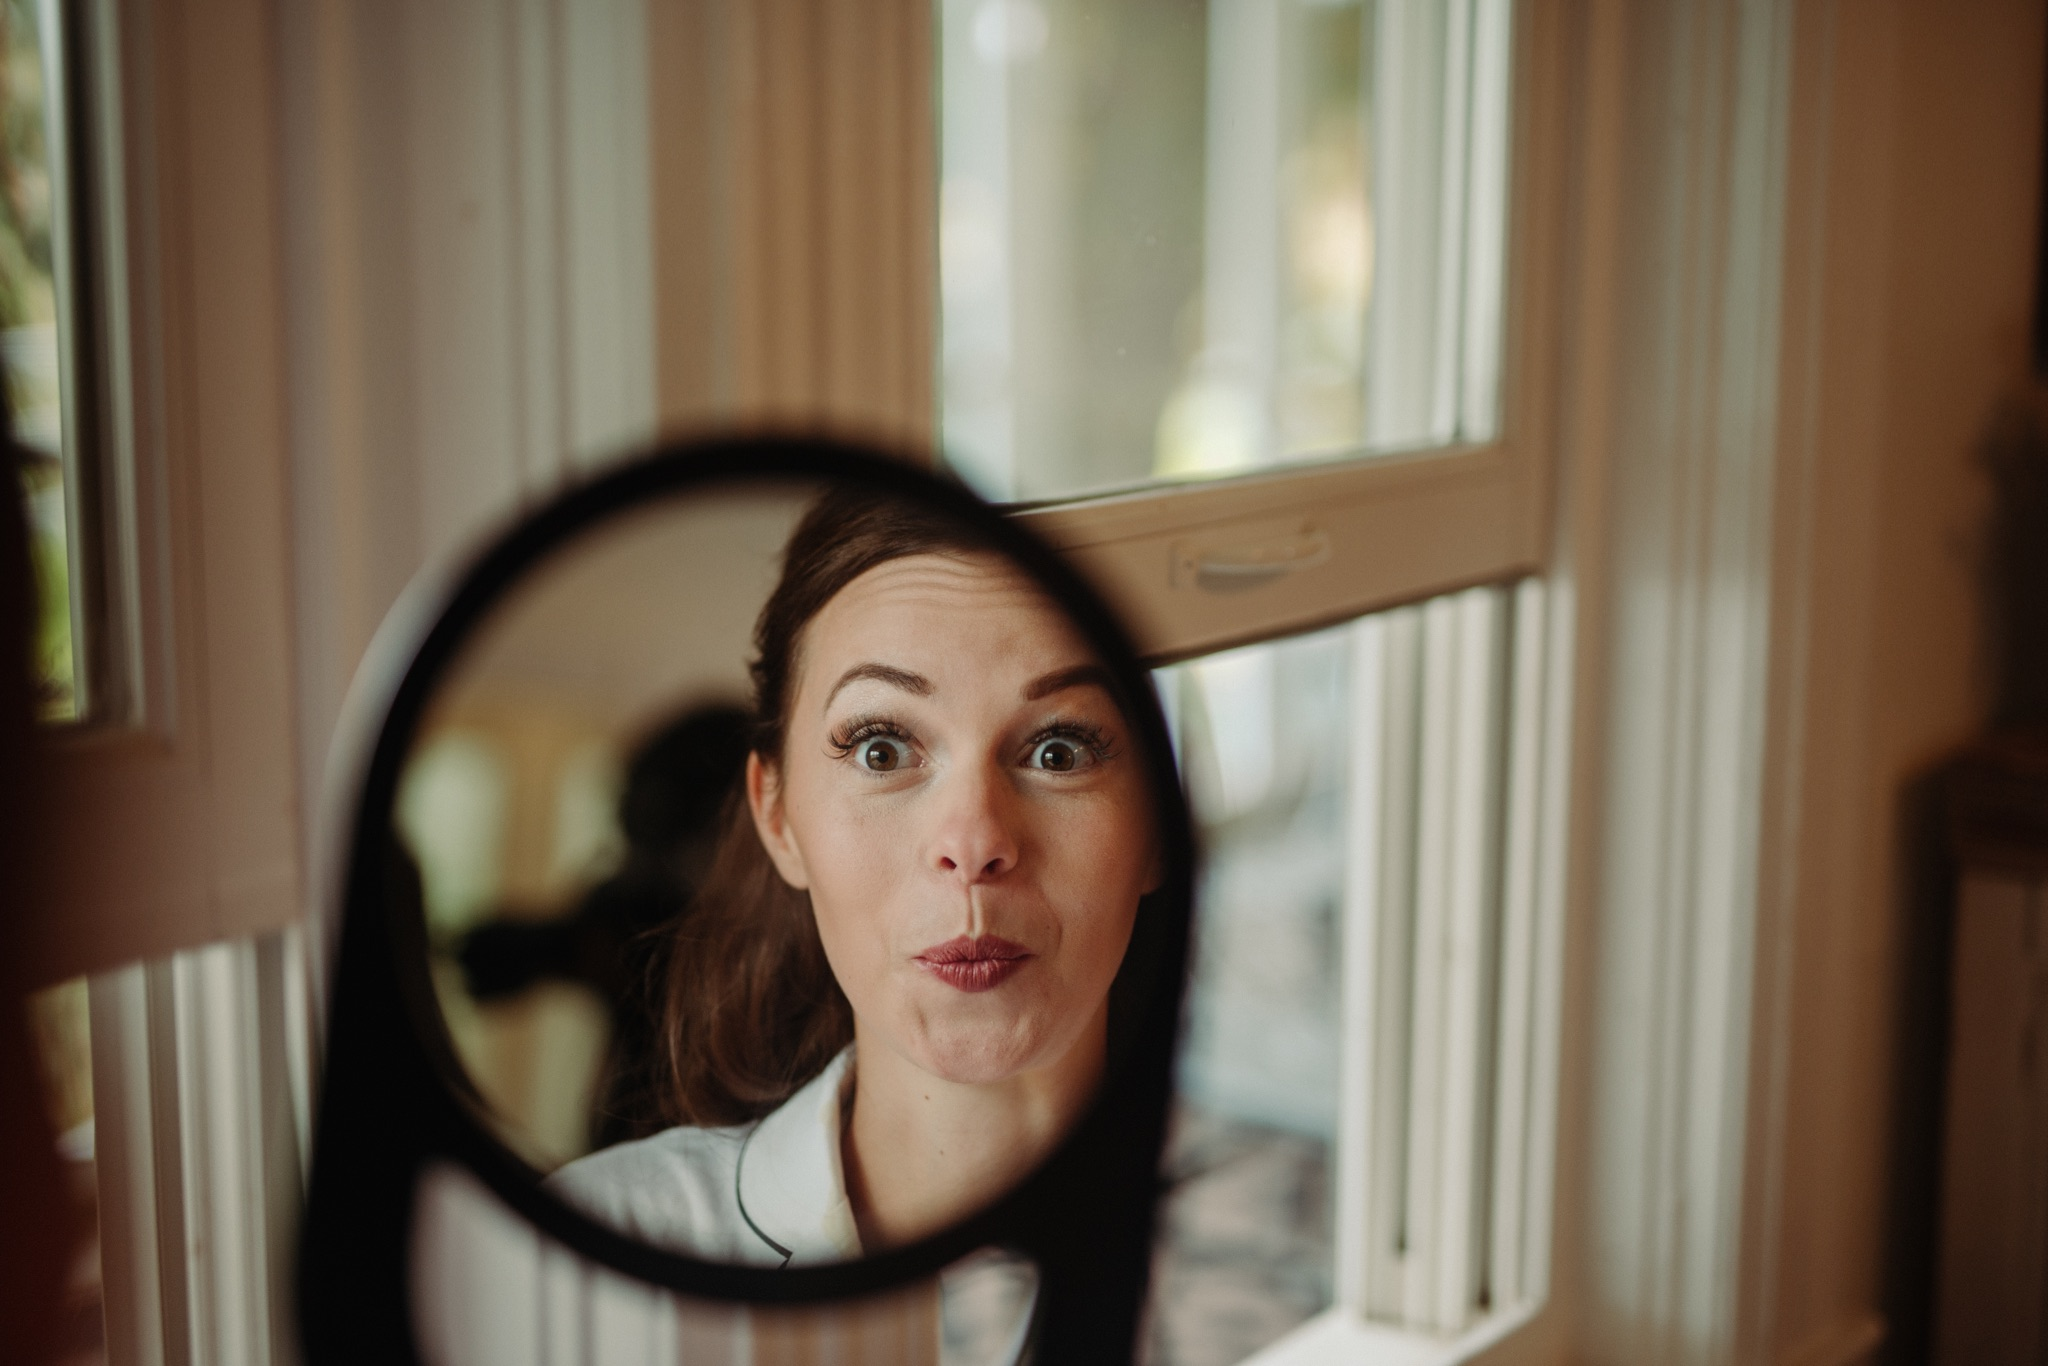 bride making a surprised face in a mirror